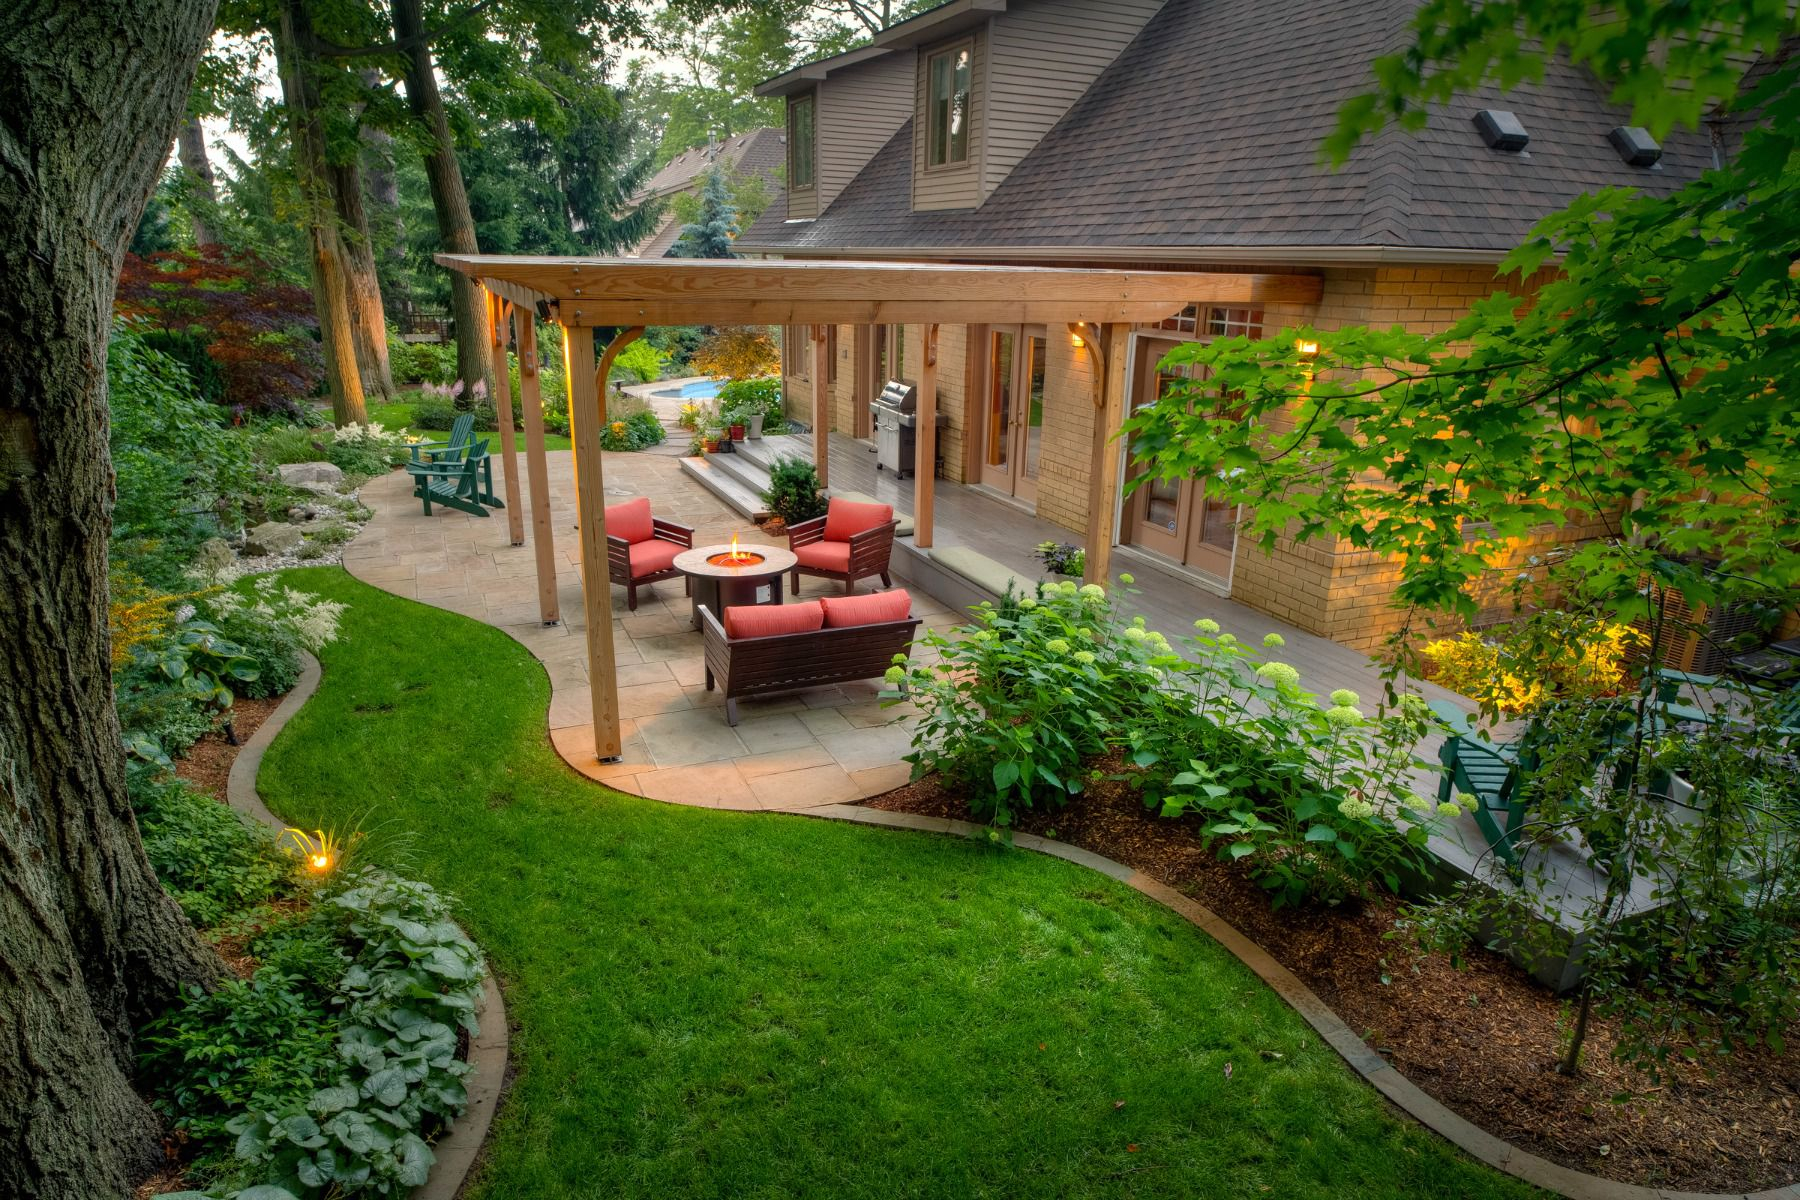 50 Backyard Landscaping Ideas To Inspire You inside 13 Smart Designs of How to Improve Pics Of Backyard Landscaping